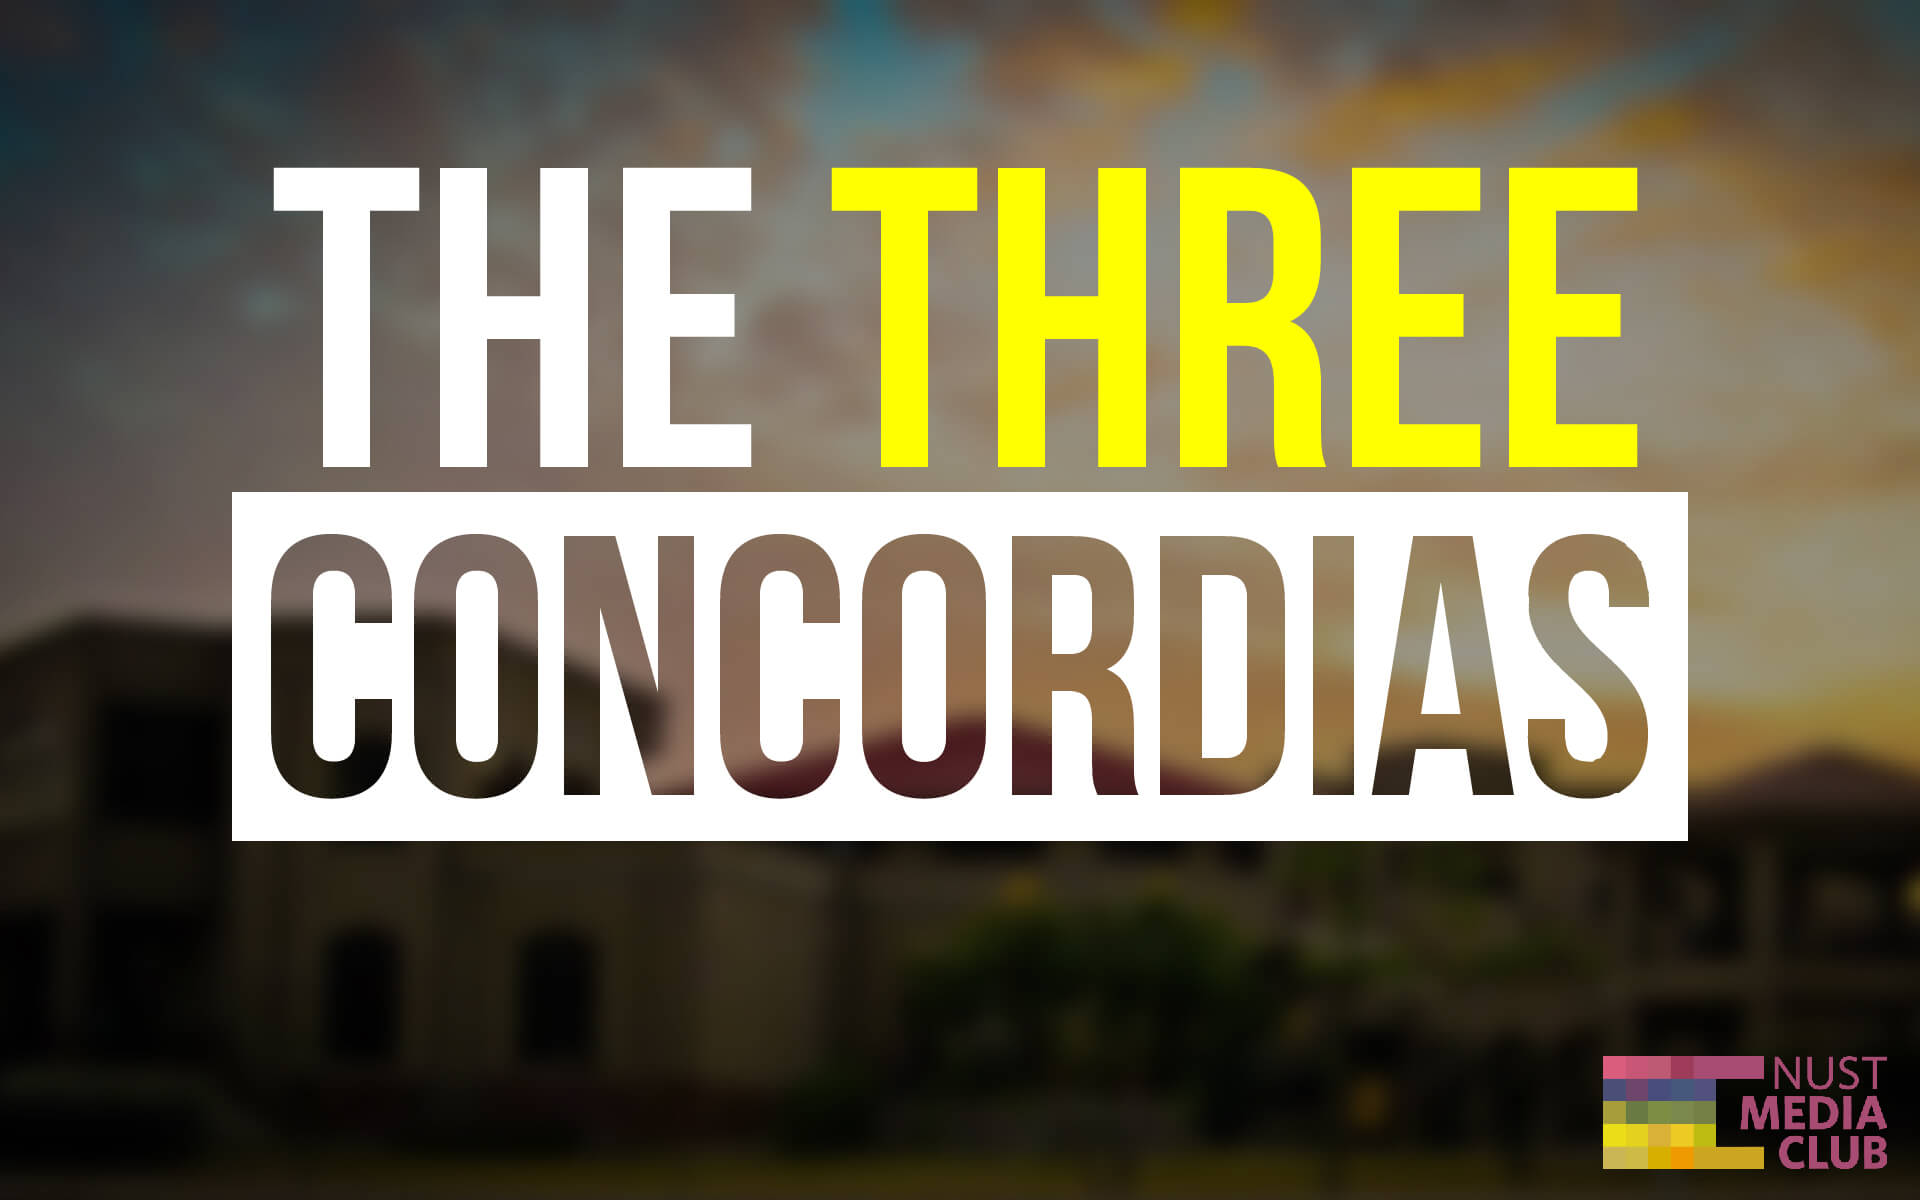 Campus – The Three Concordias